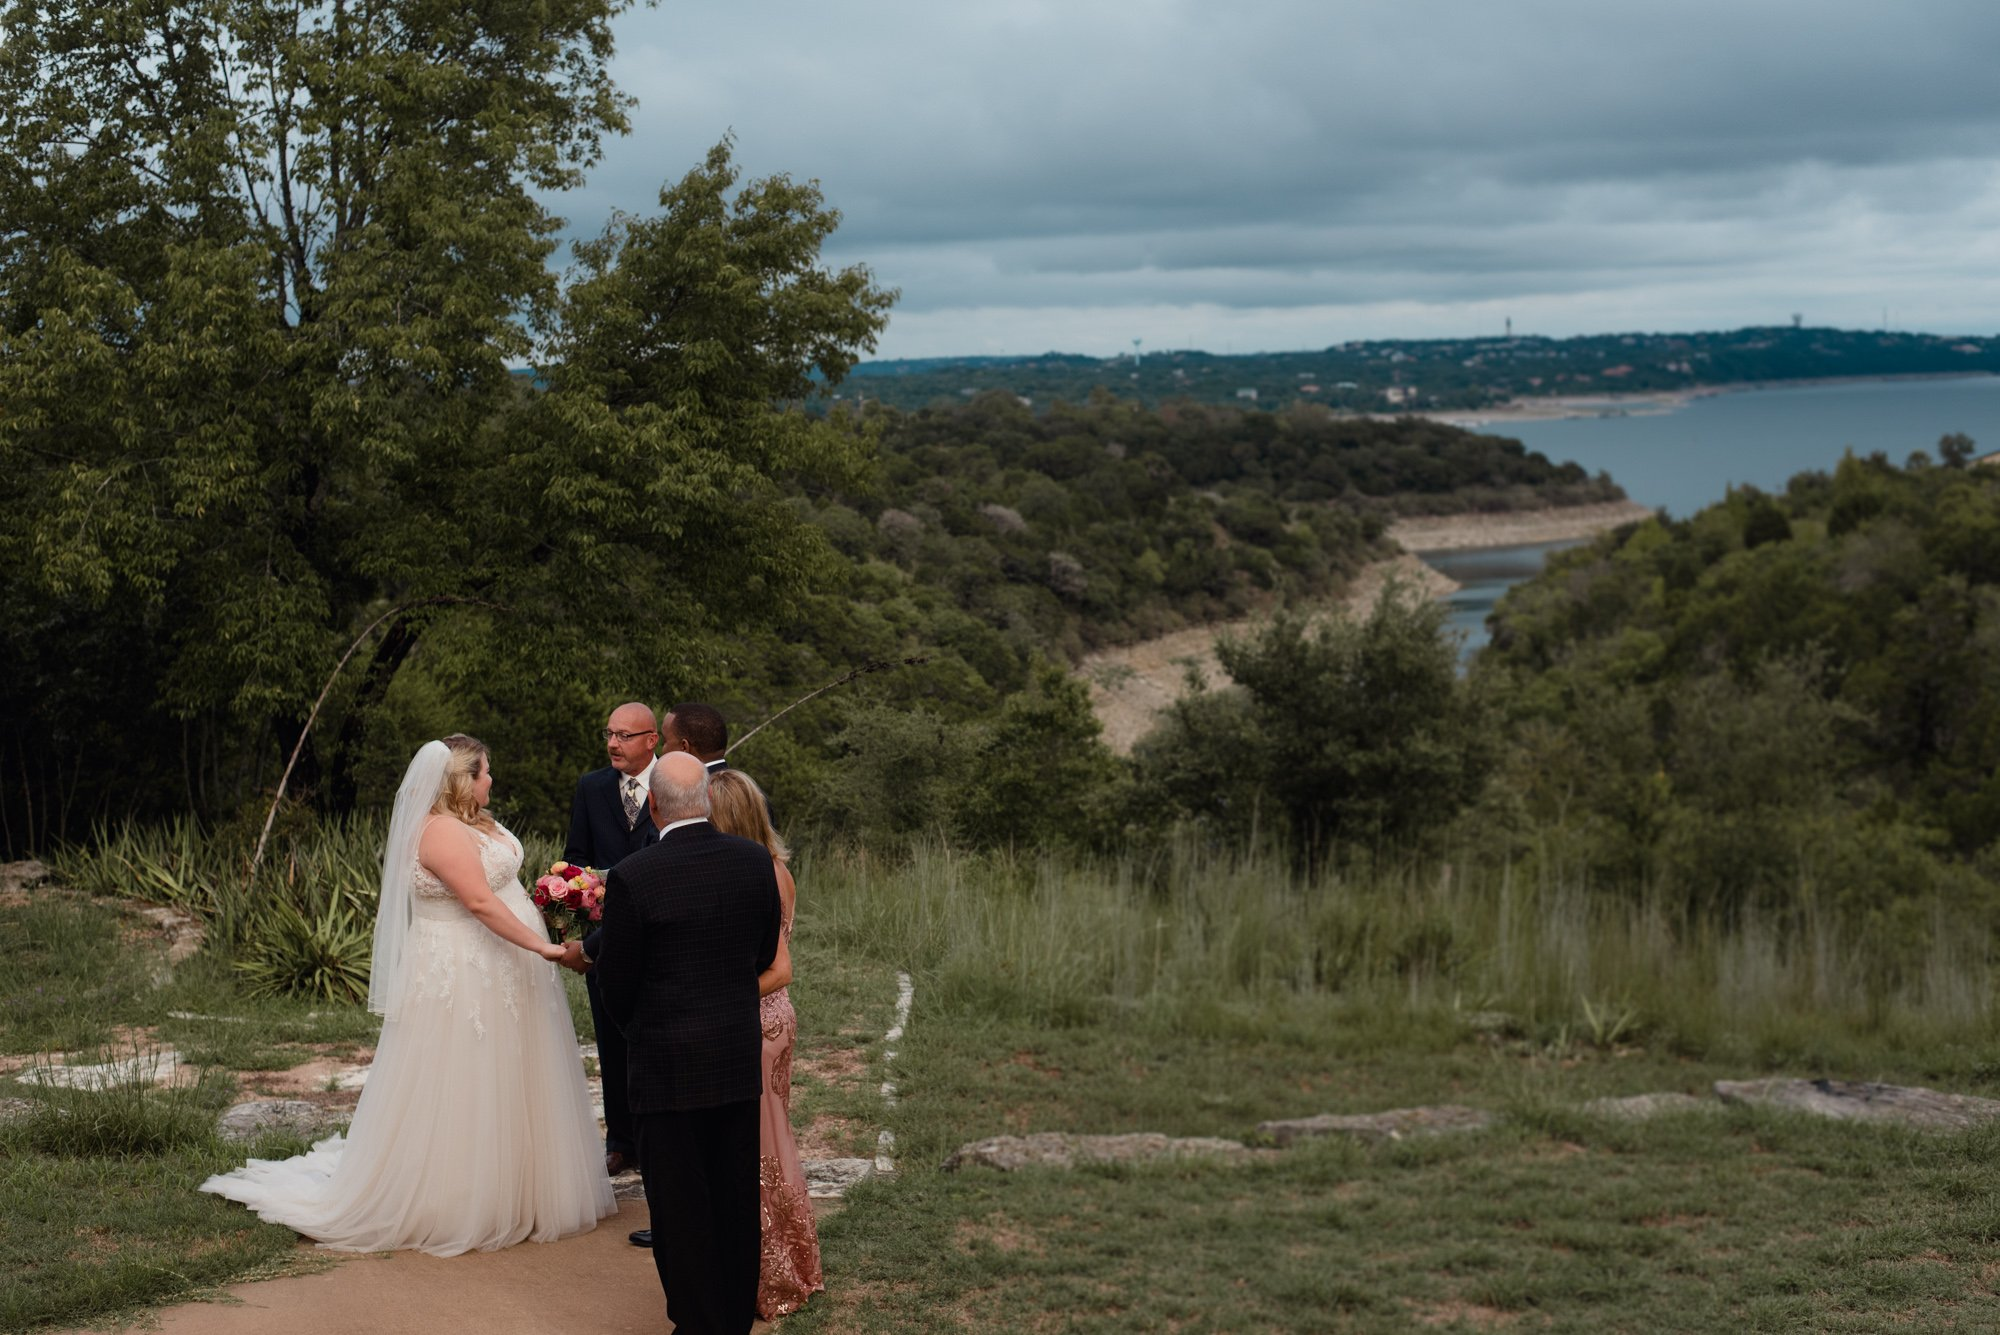 small lake house wedding austin texas, lake travis wedding photos, private elopement austin, backyard wedding